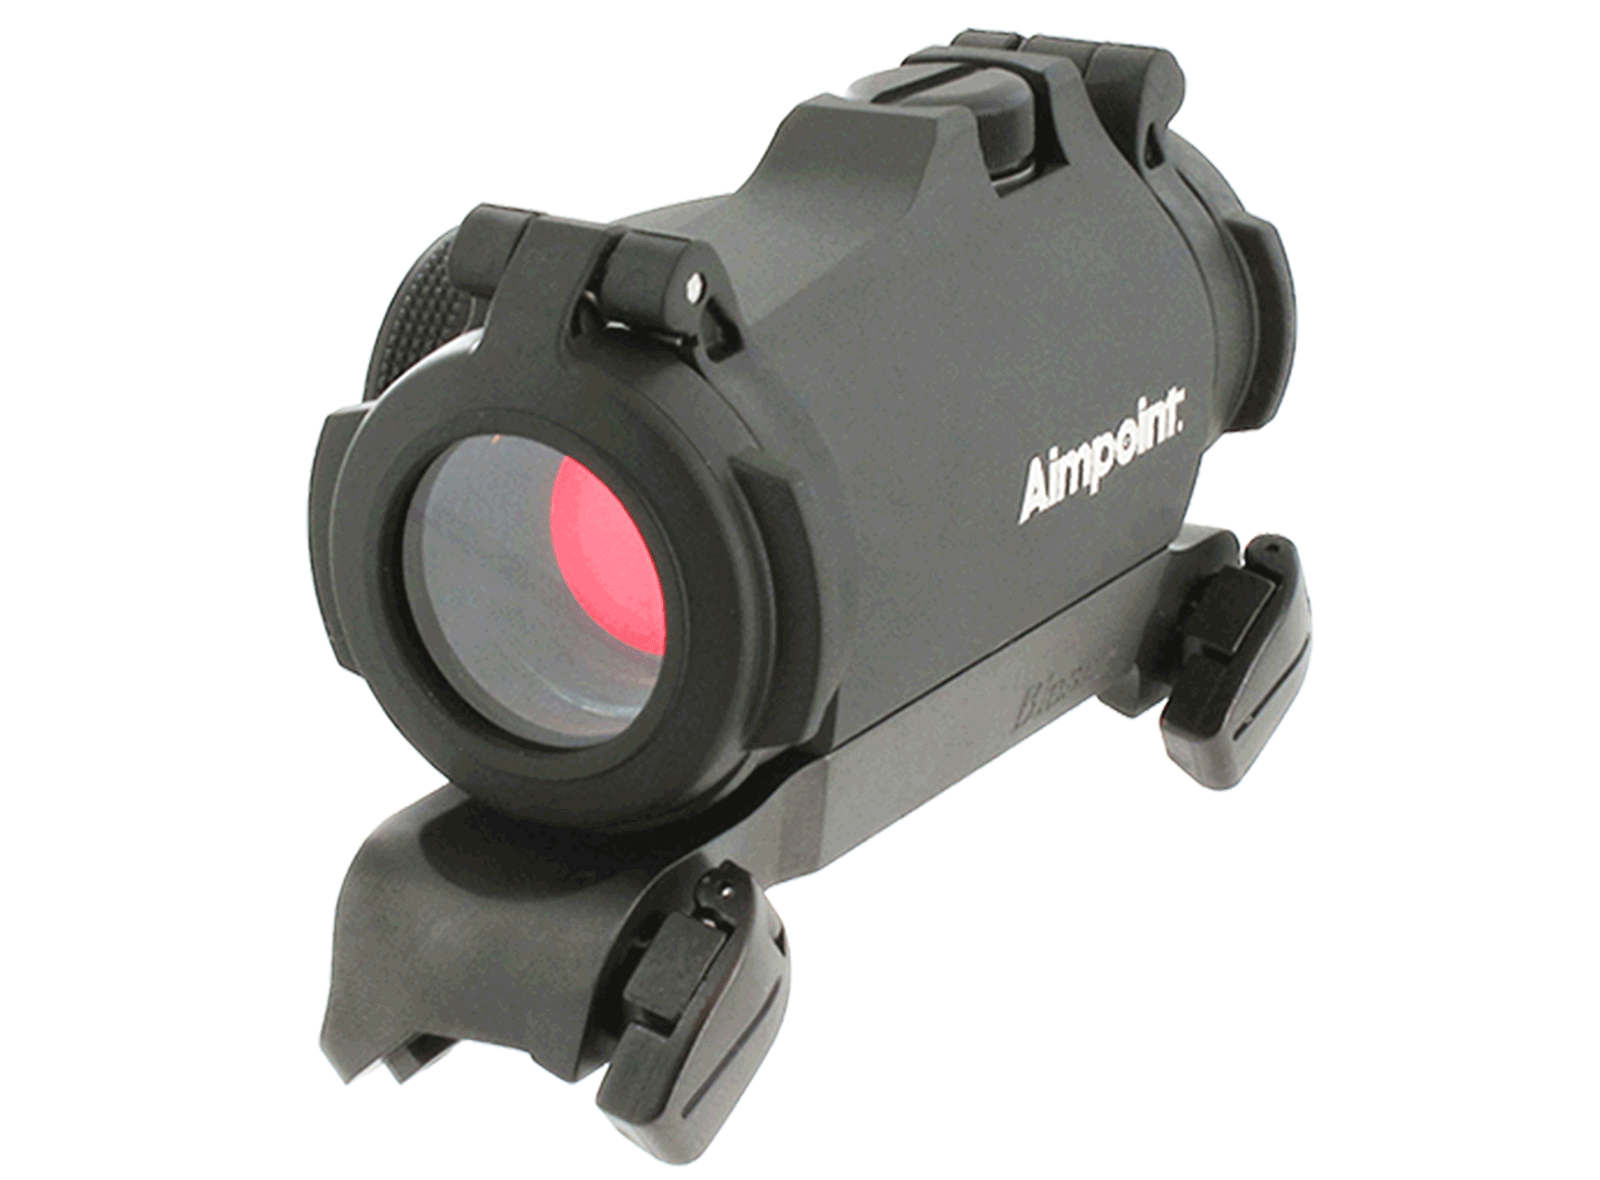 Aimpoint MICRO H-2 2 MOA ACET Technologie black mit org. Blaser Sattelmontage